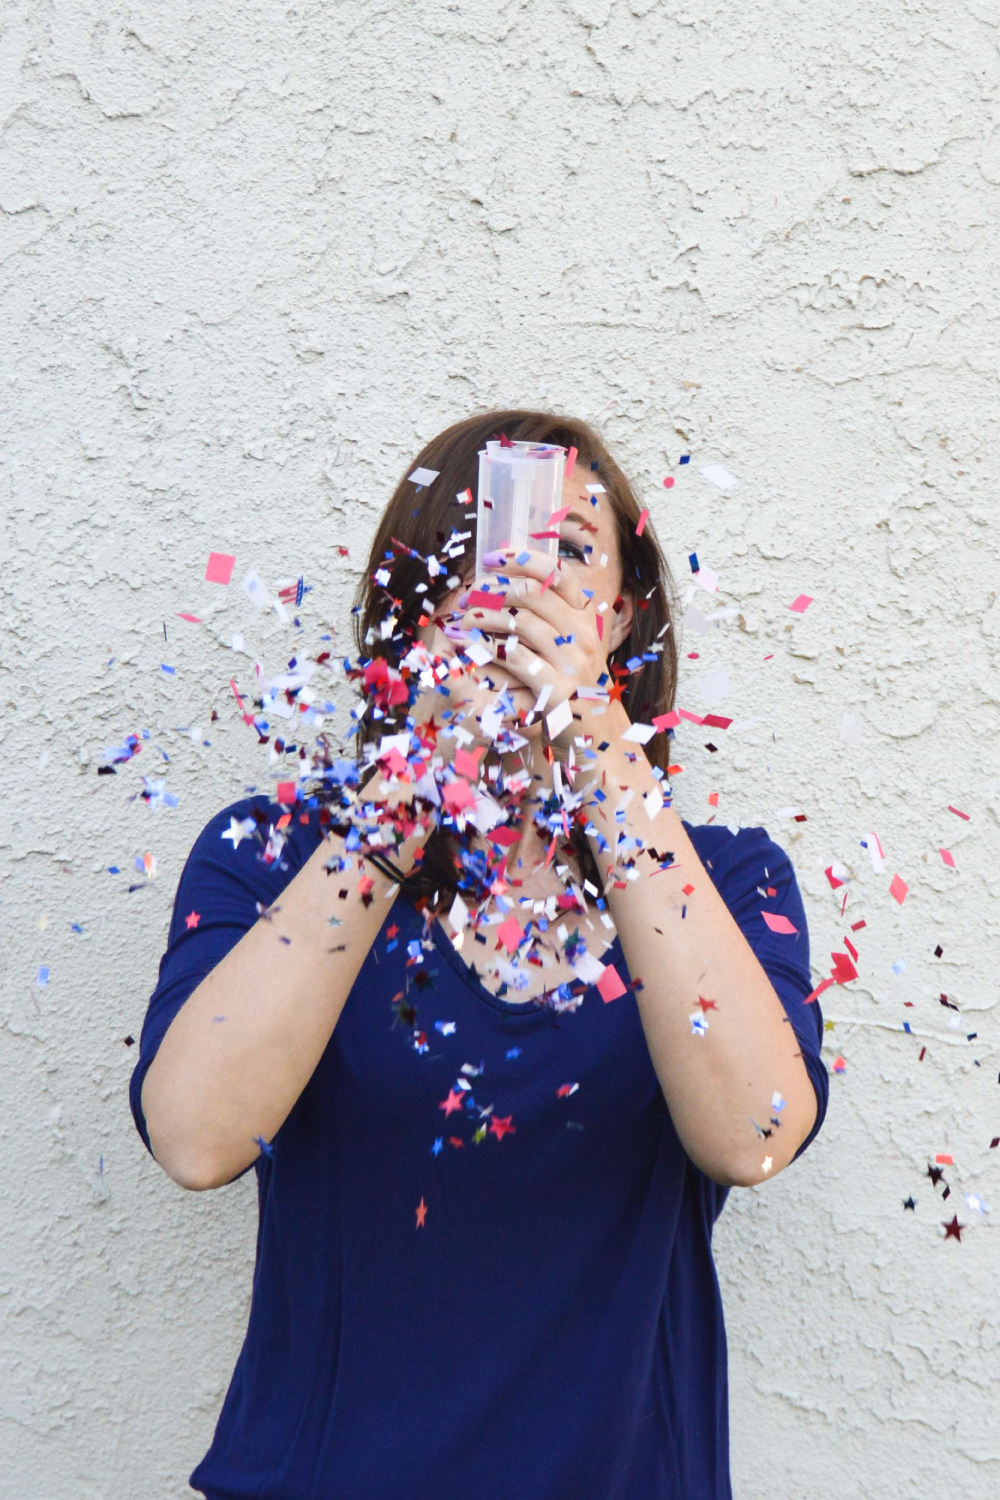 DIY Confetti Bombs for 4th of July